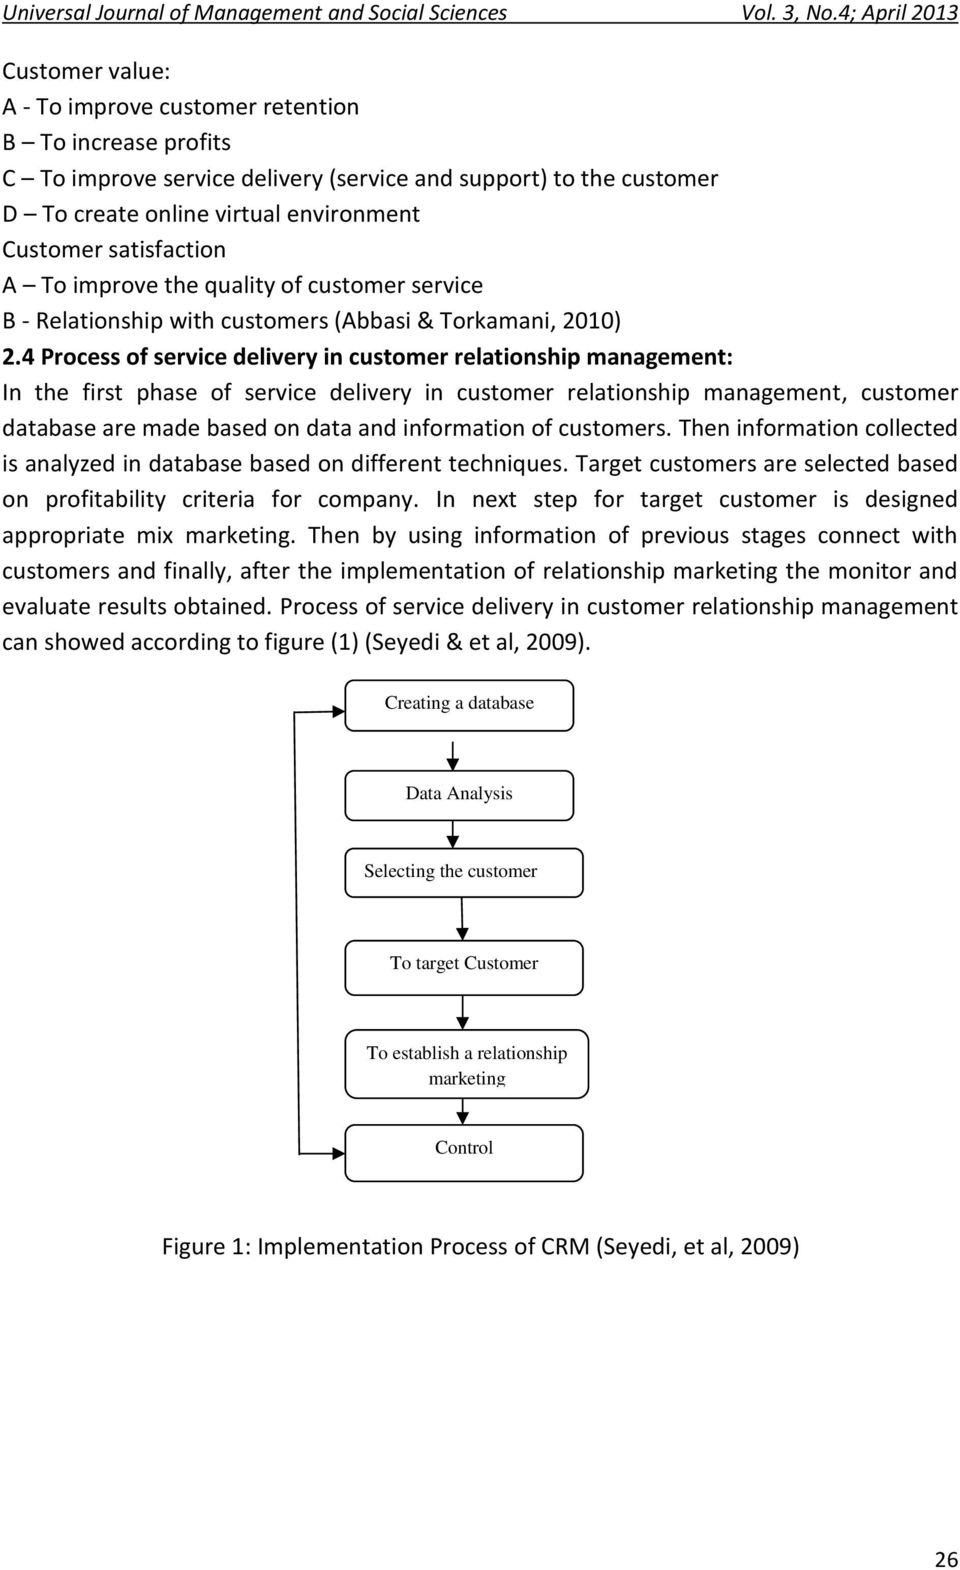 4 Process of service delivery in customer relationship management: In the first phase of service delivery in customer relationship management, customer database are made based on data and information